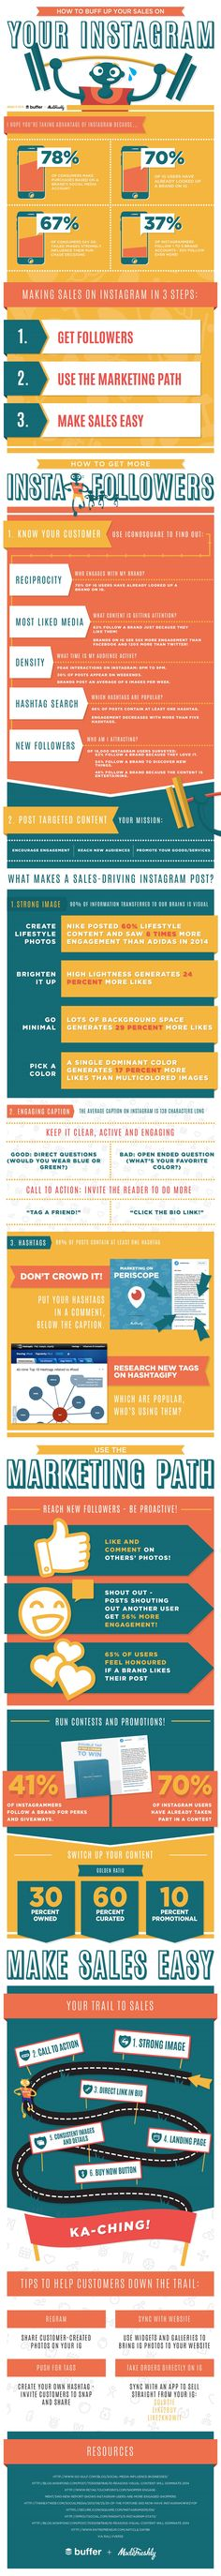 How to Naturally Bolster Your Company's Instagram Presence - #infographic